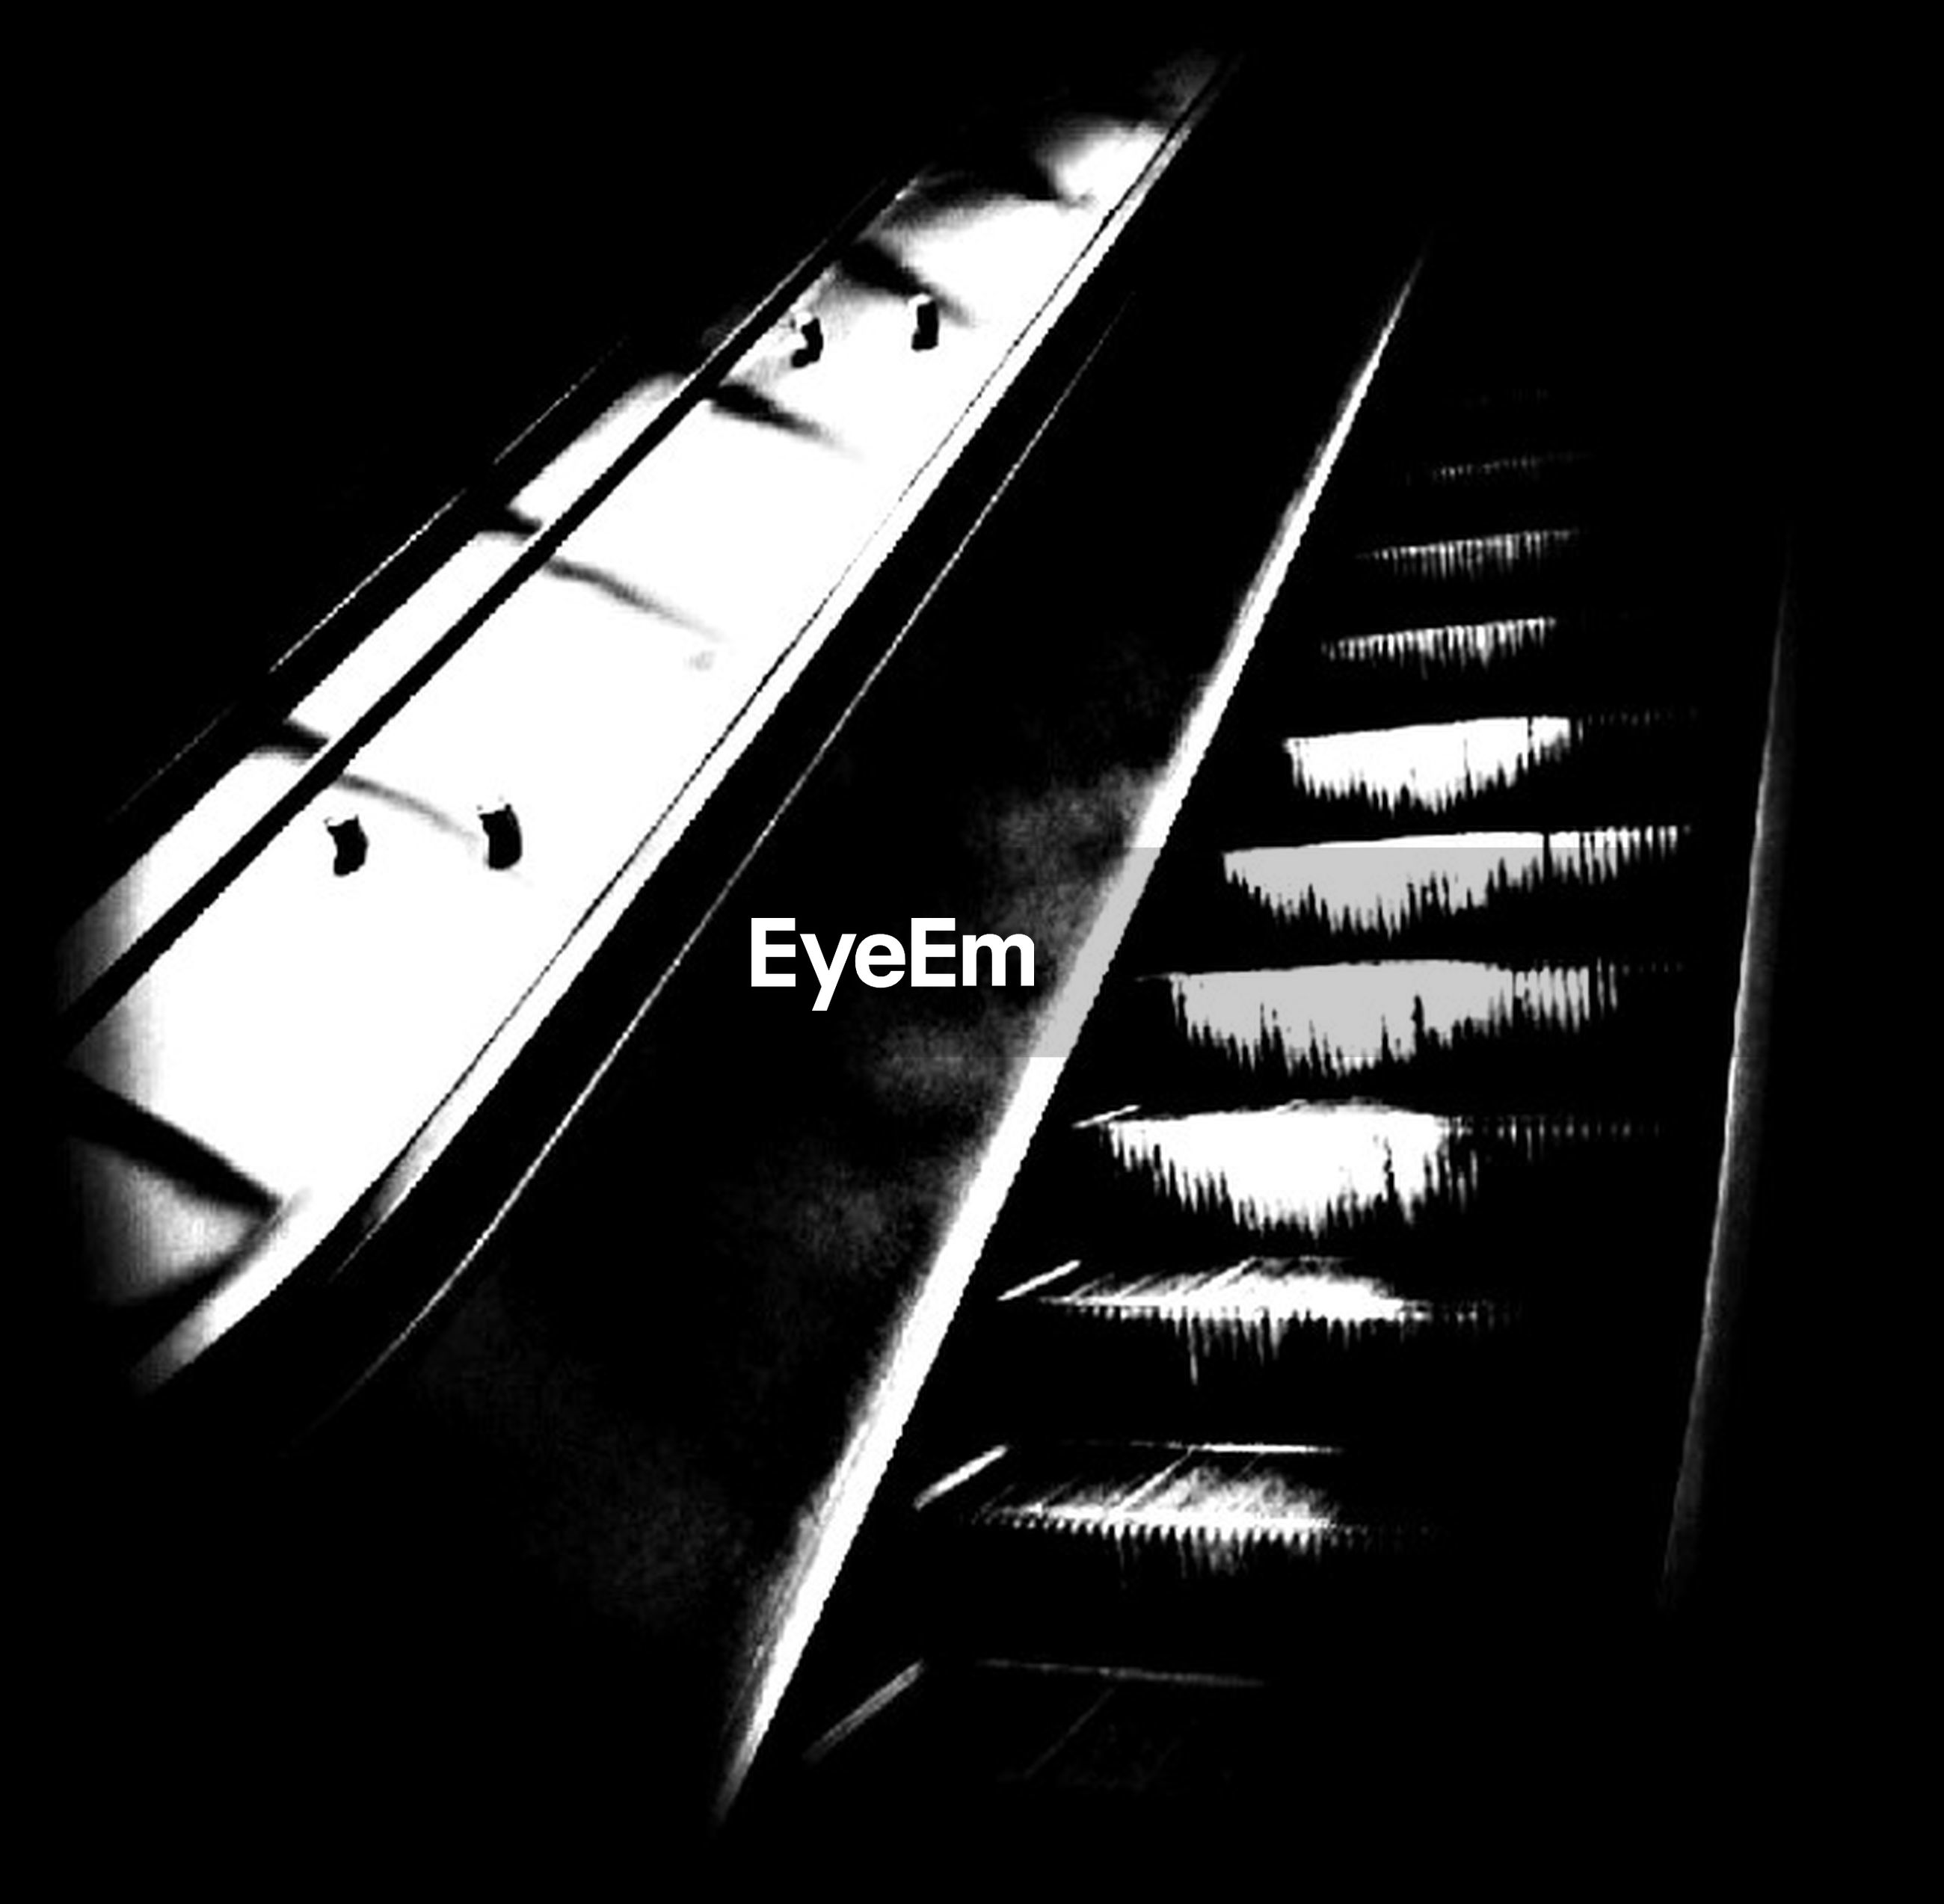 indoors, low angle view, technology, illuminated, no people, close-up, music, modern, staircase, built structure, connection, architecture, in a row, dark, part of, arts culture and entertainment, escalator, night, piano key, lighting equipment